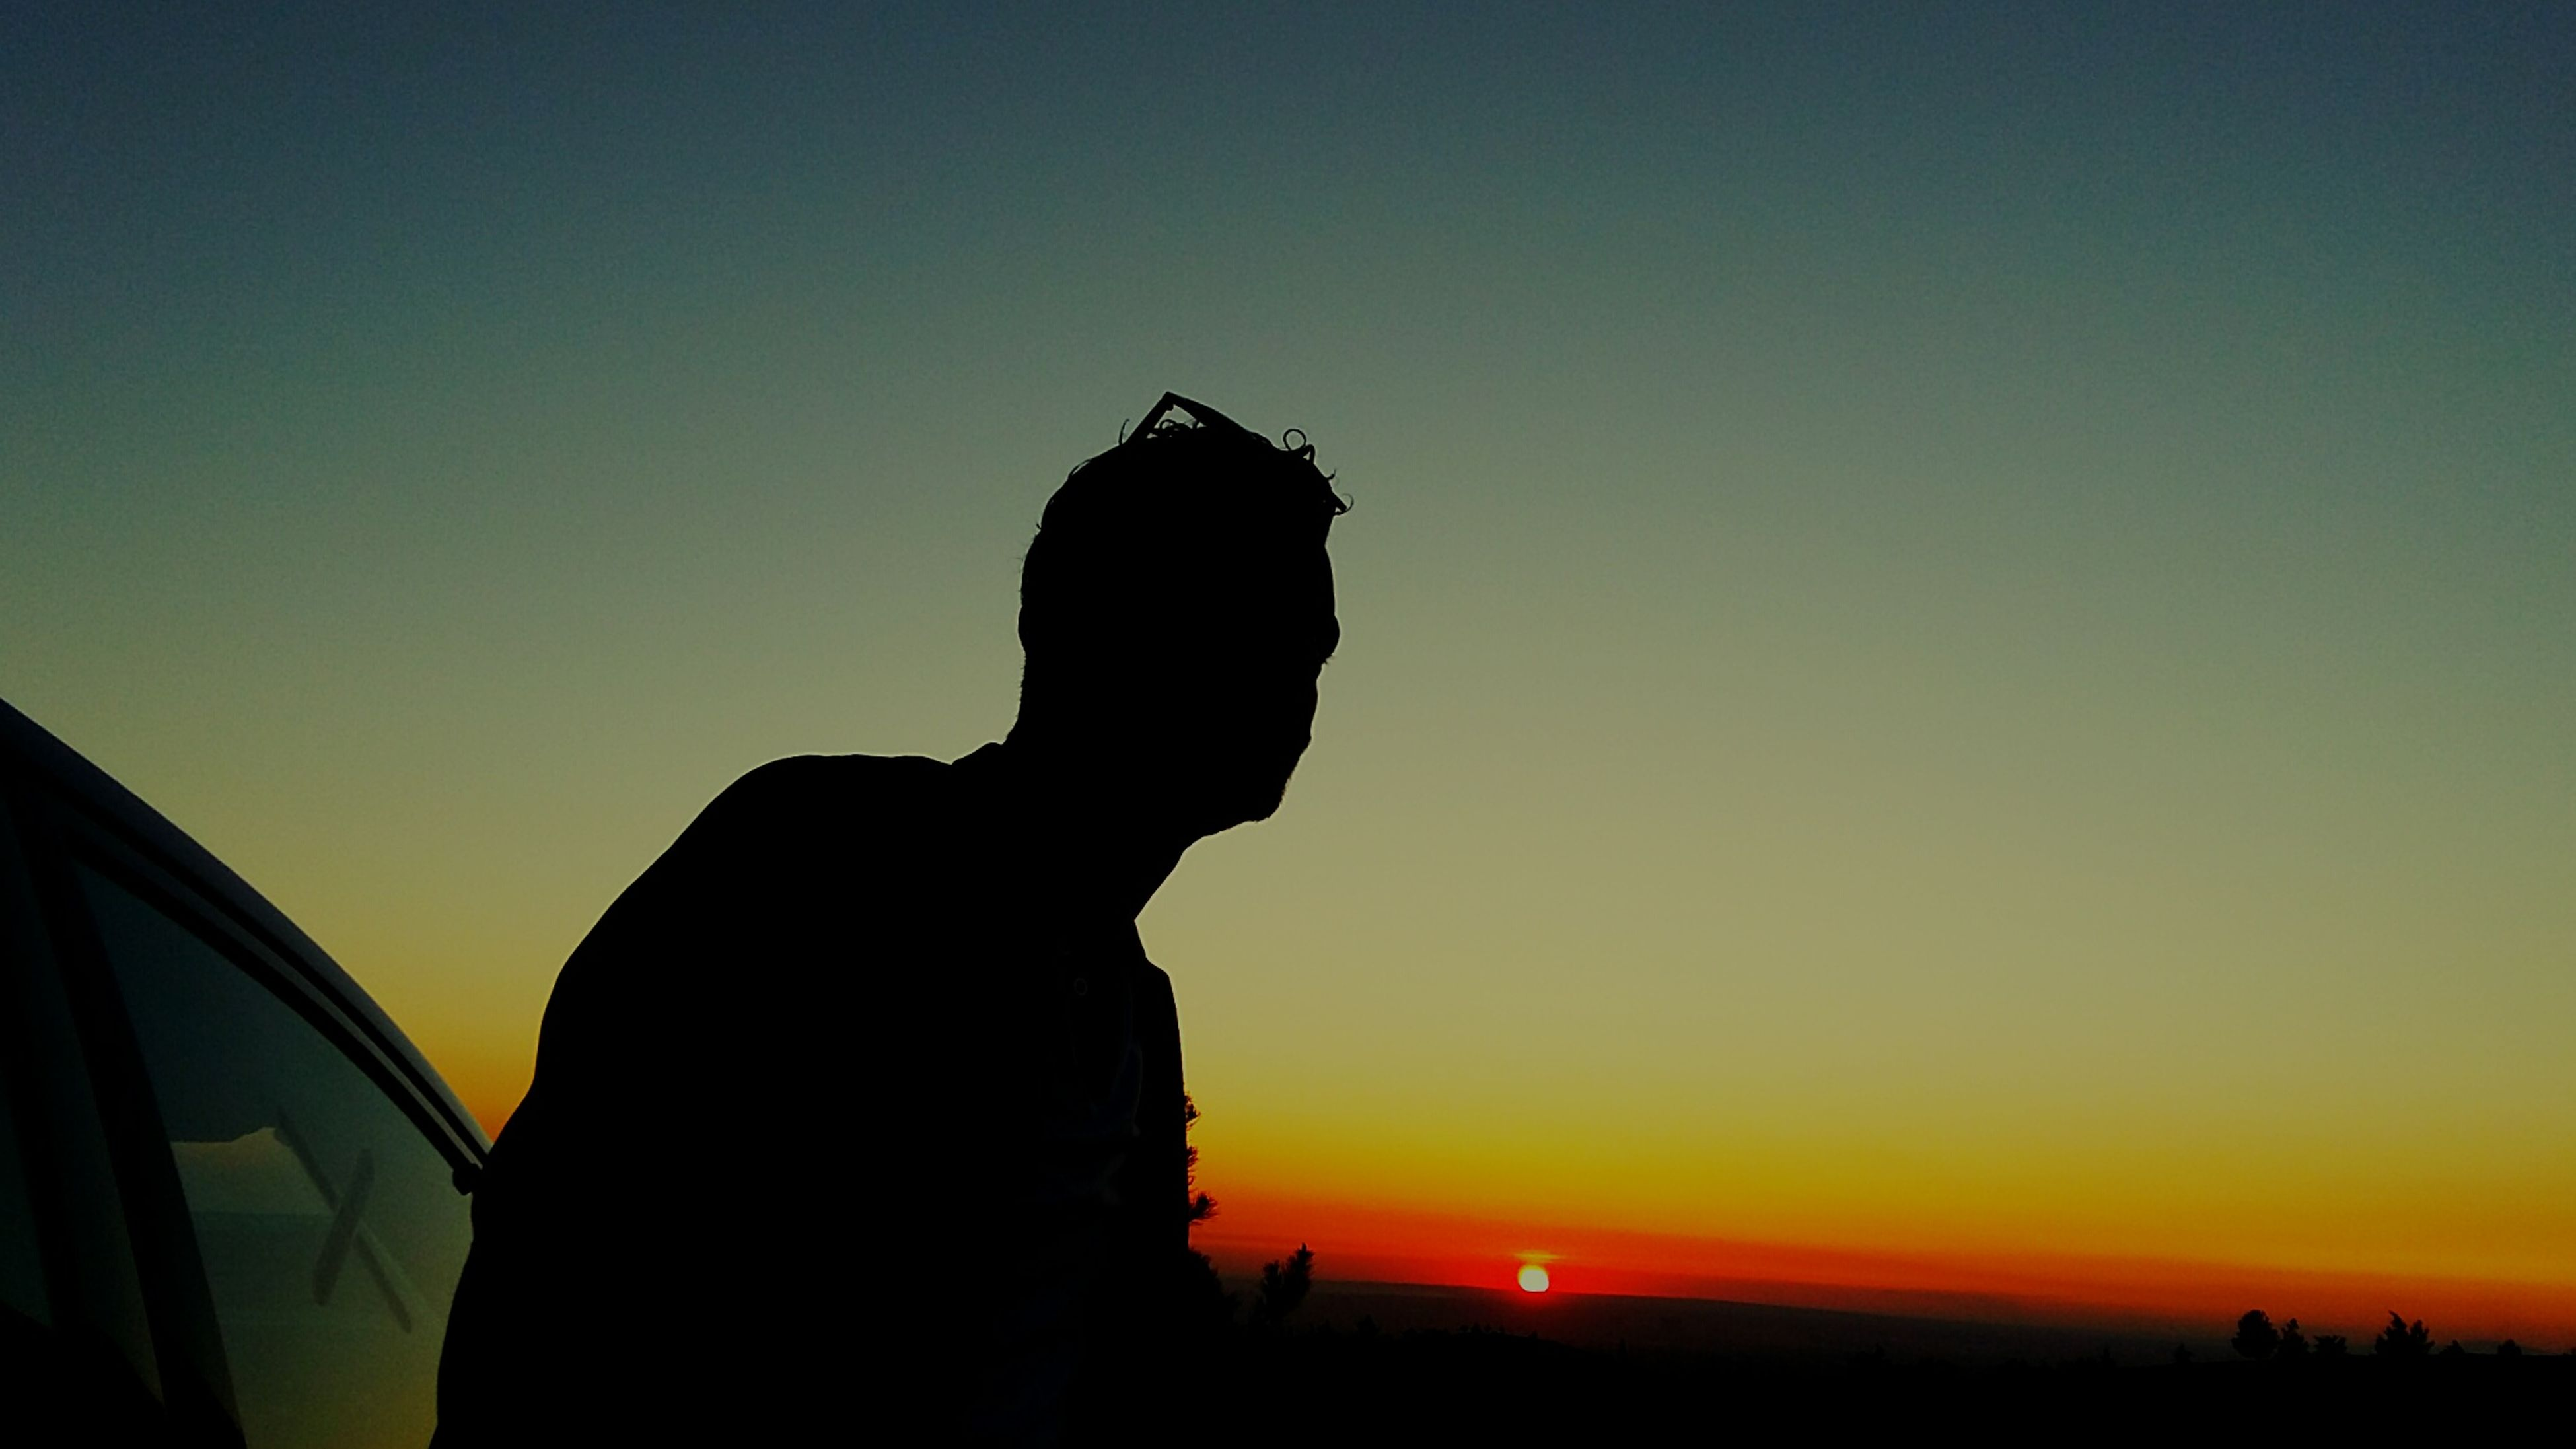 silhouette, sunset, copy space, clear sky, orange color, sky, outline, beauty in nature, nature, tranquility, sun, dusk, low angle view, outdoors, tranquil scene, back lit, scenics, dark